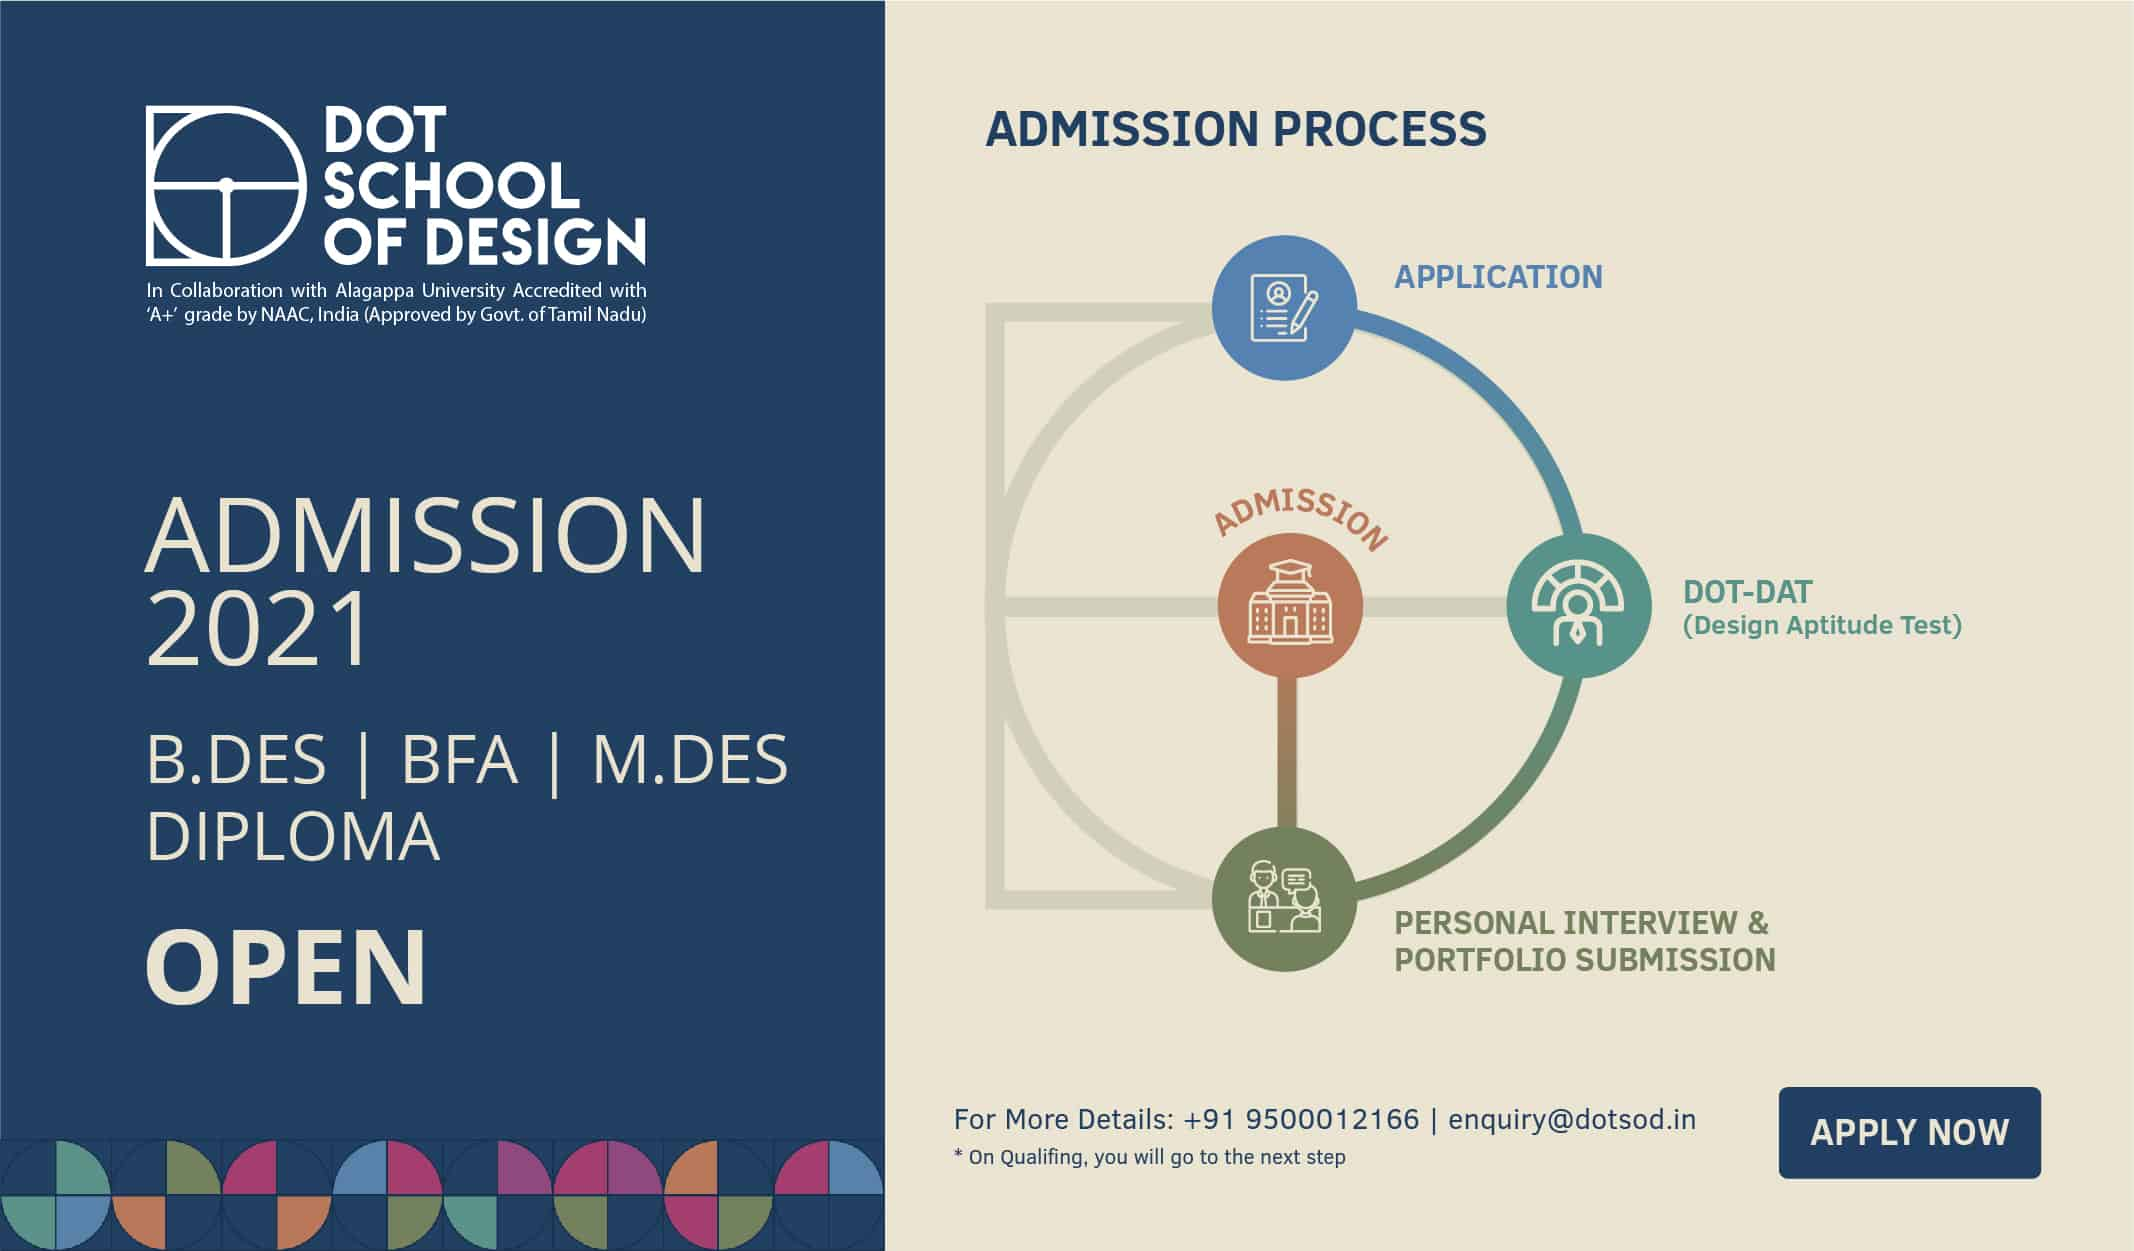 Pamphlet of a design college in Chennai about 2021 admissions and the process depicted using their logo